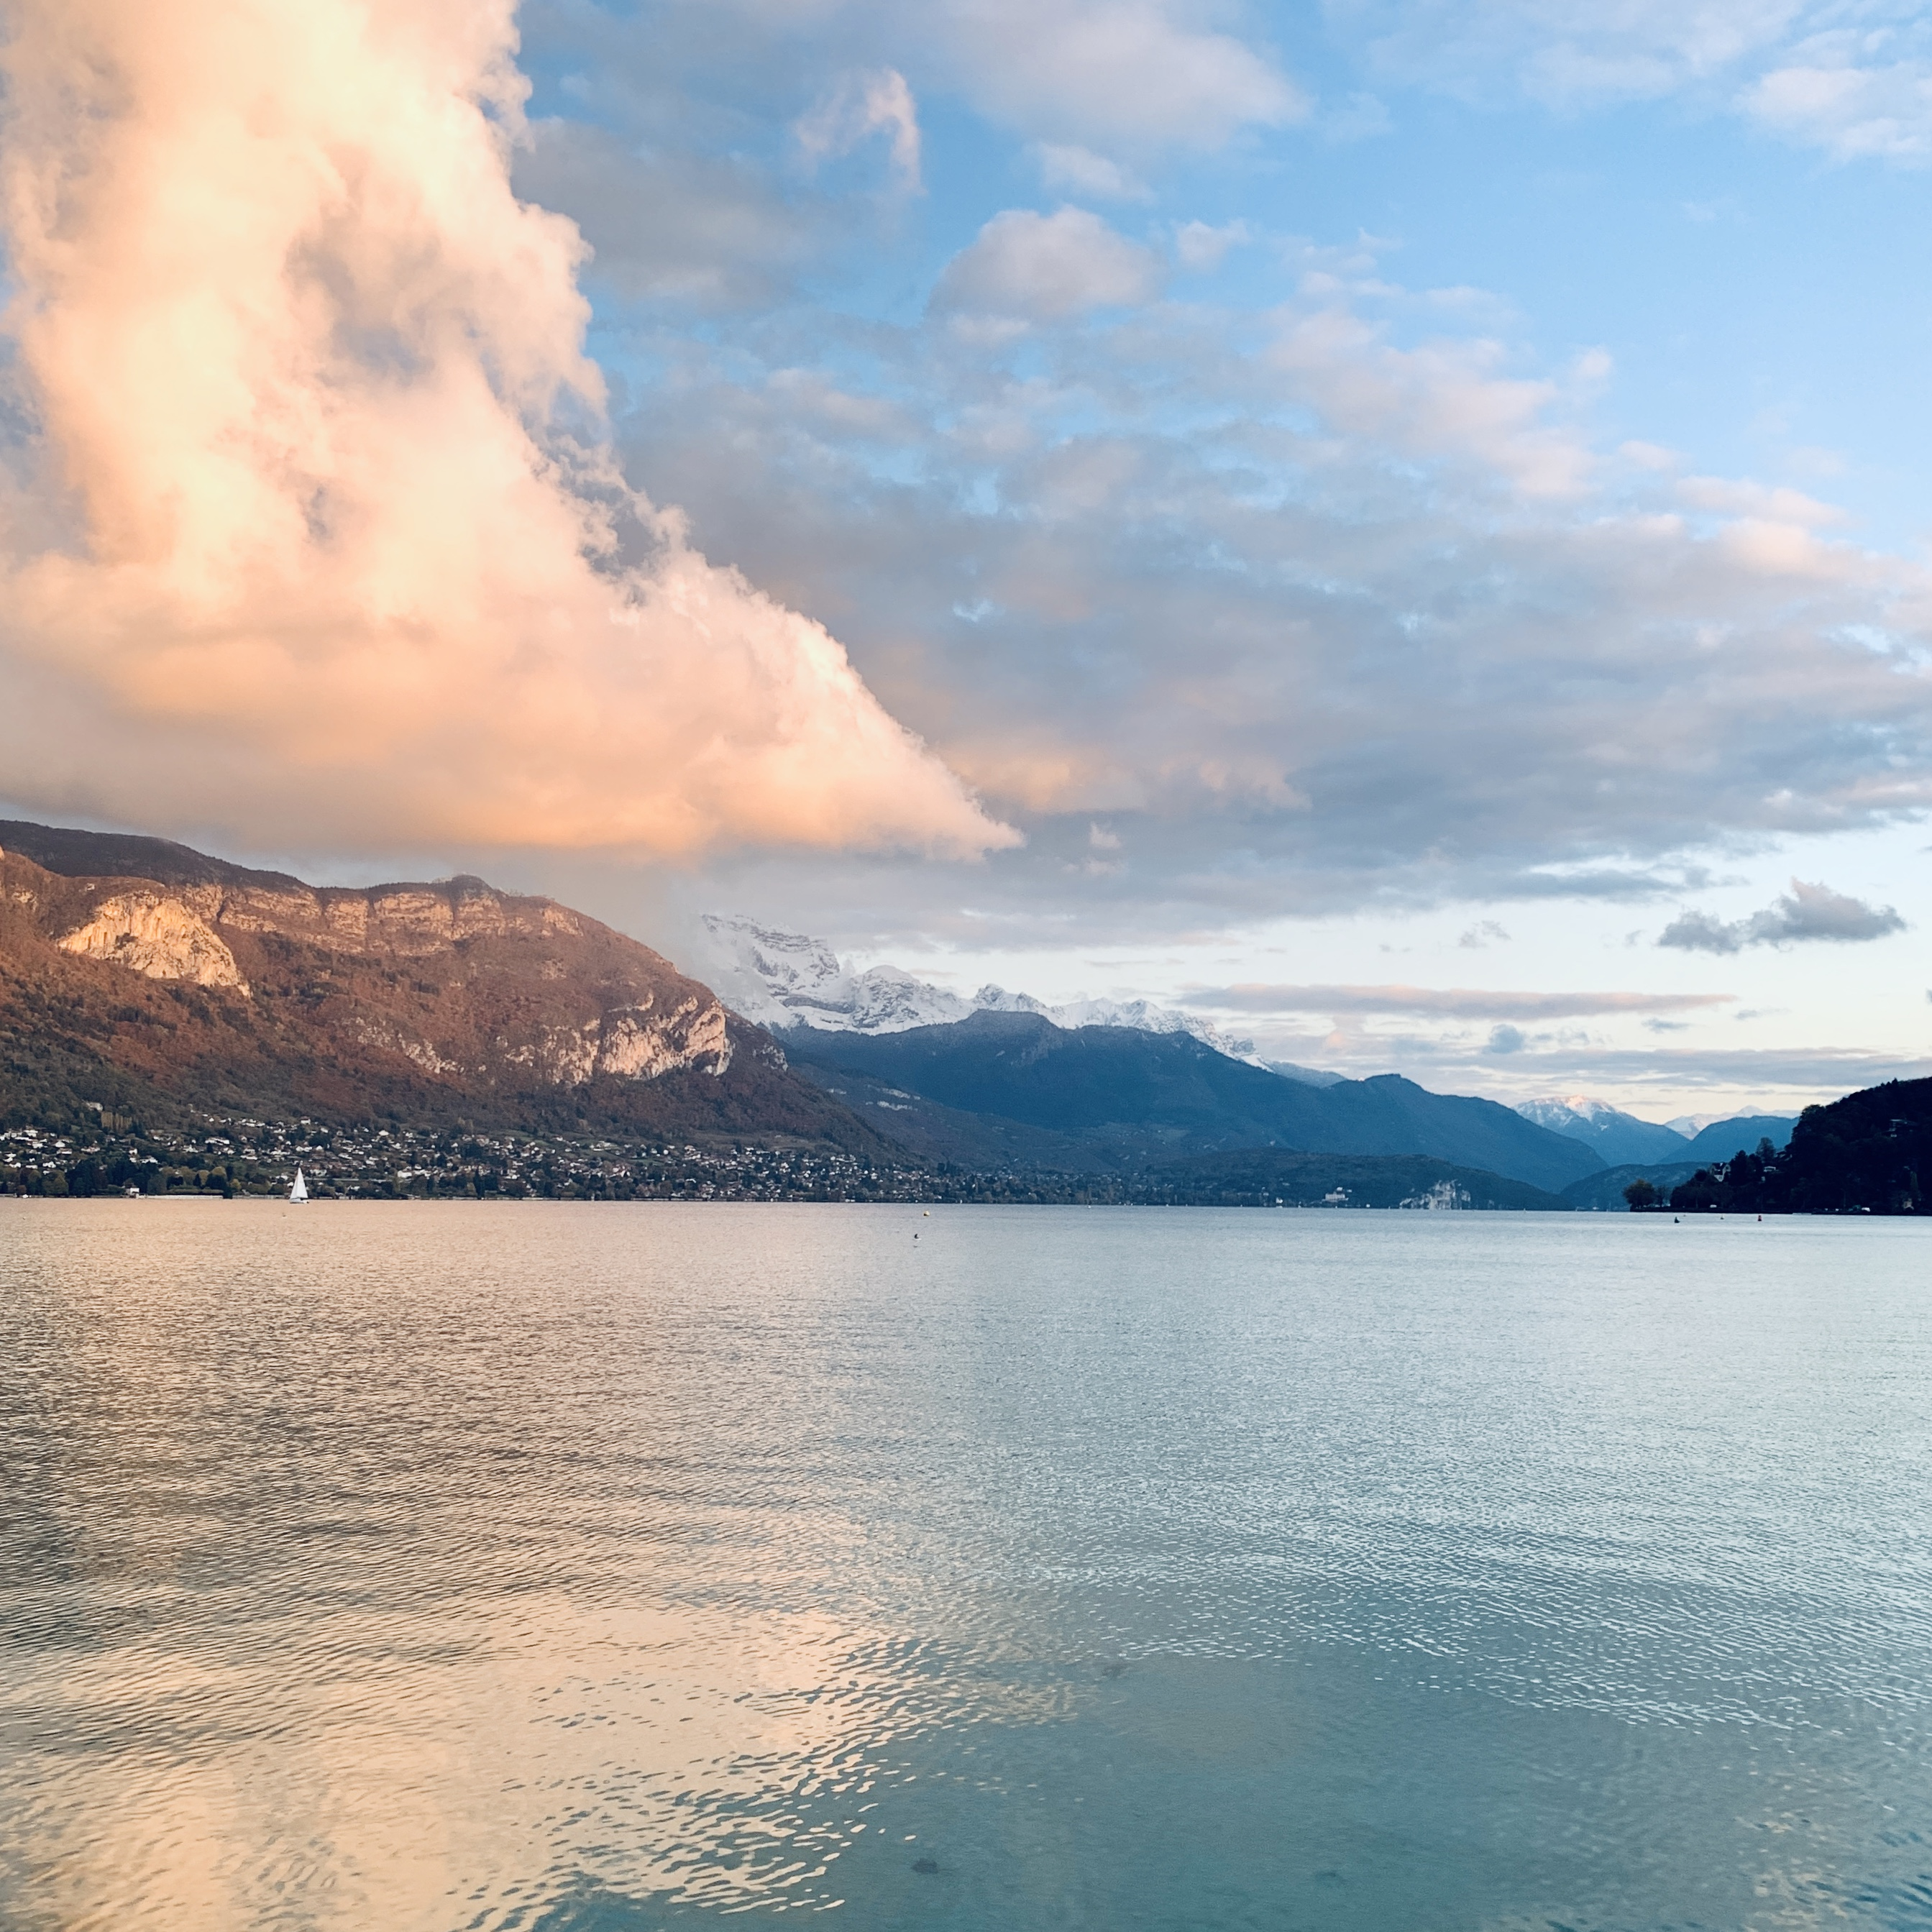 annecy - Feel Good.